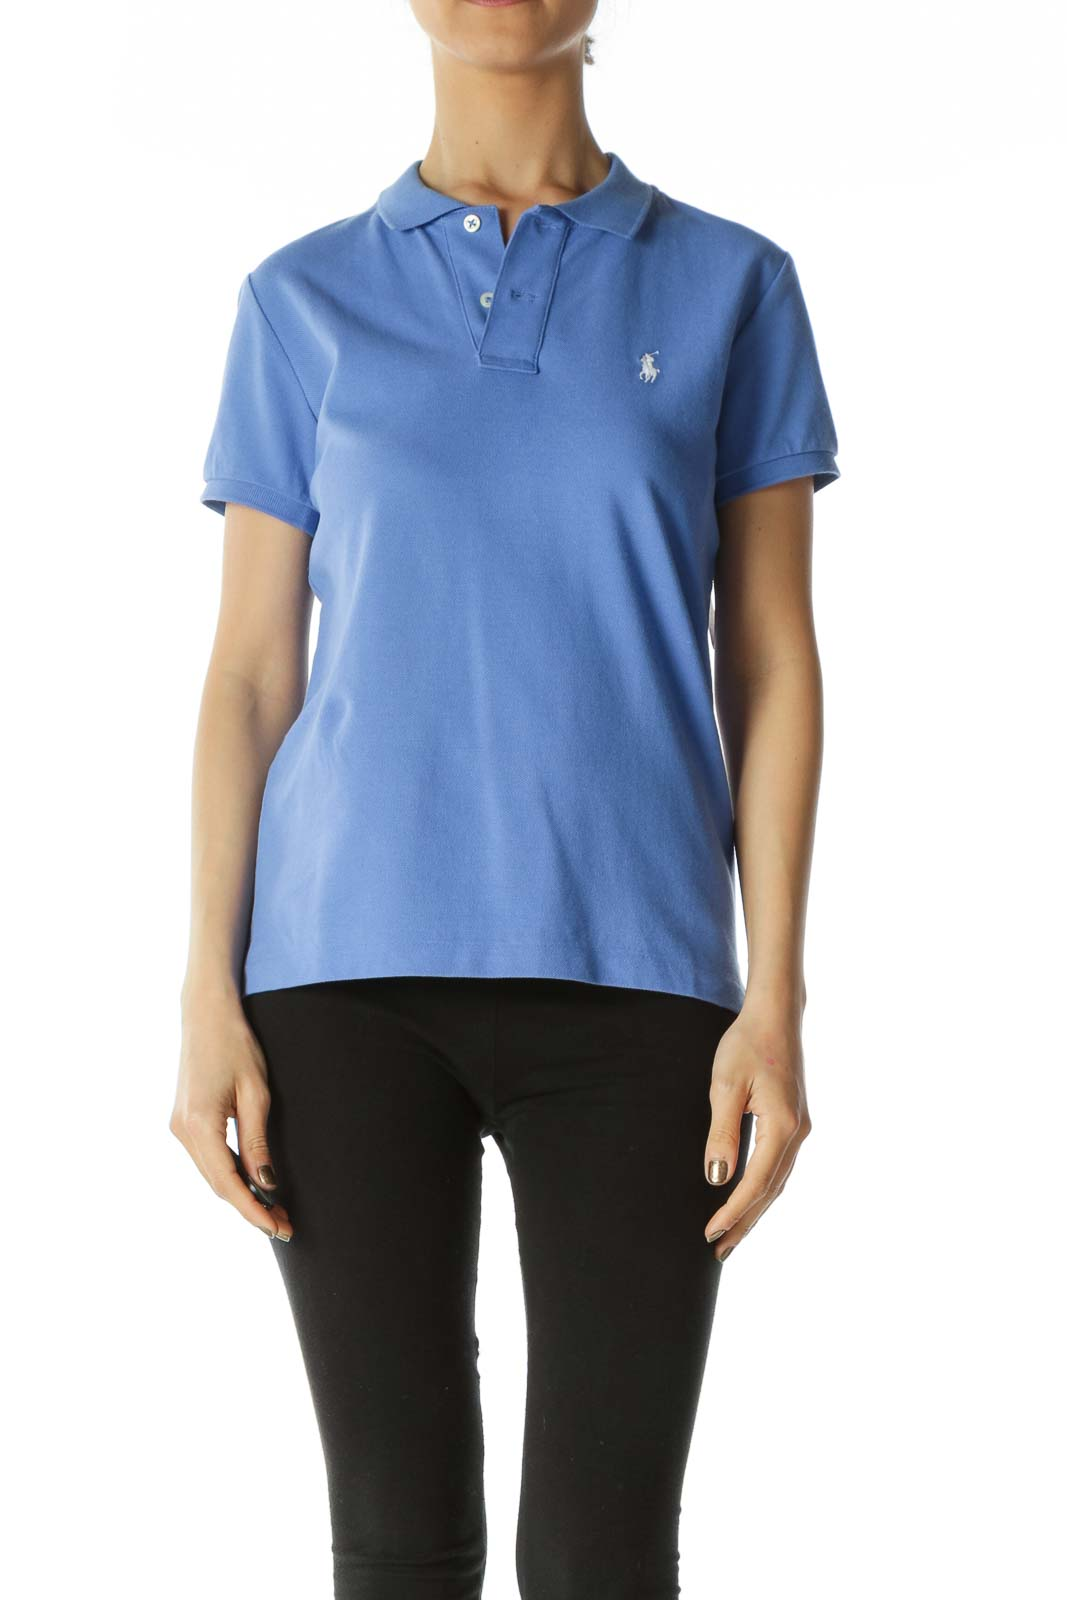 Cobalt Blue Logo Skinny Polo with Taped Sleeves Front